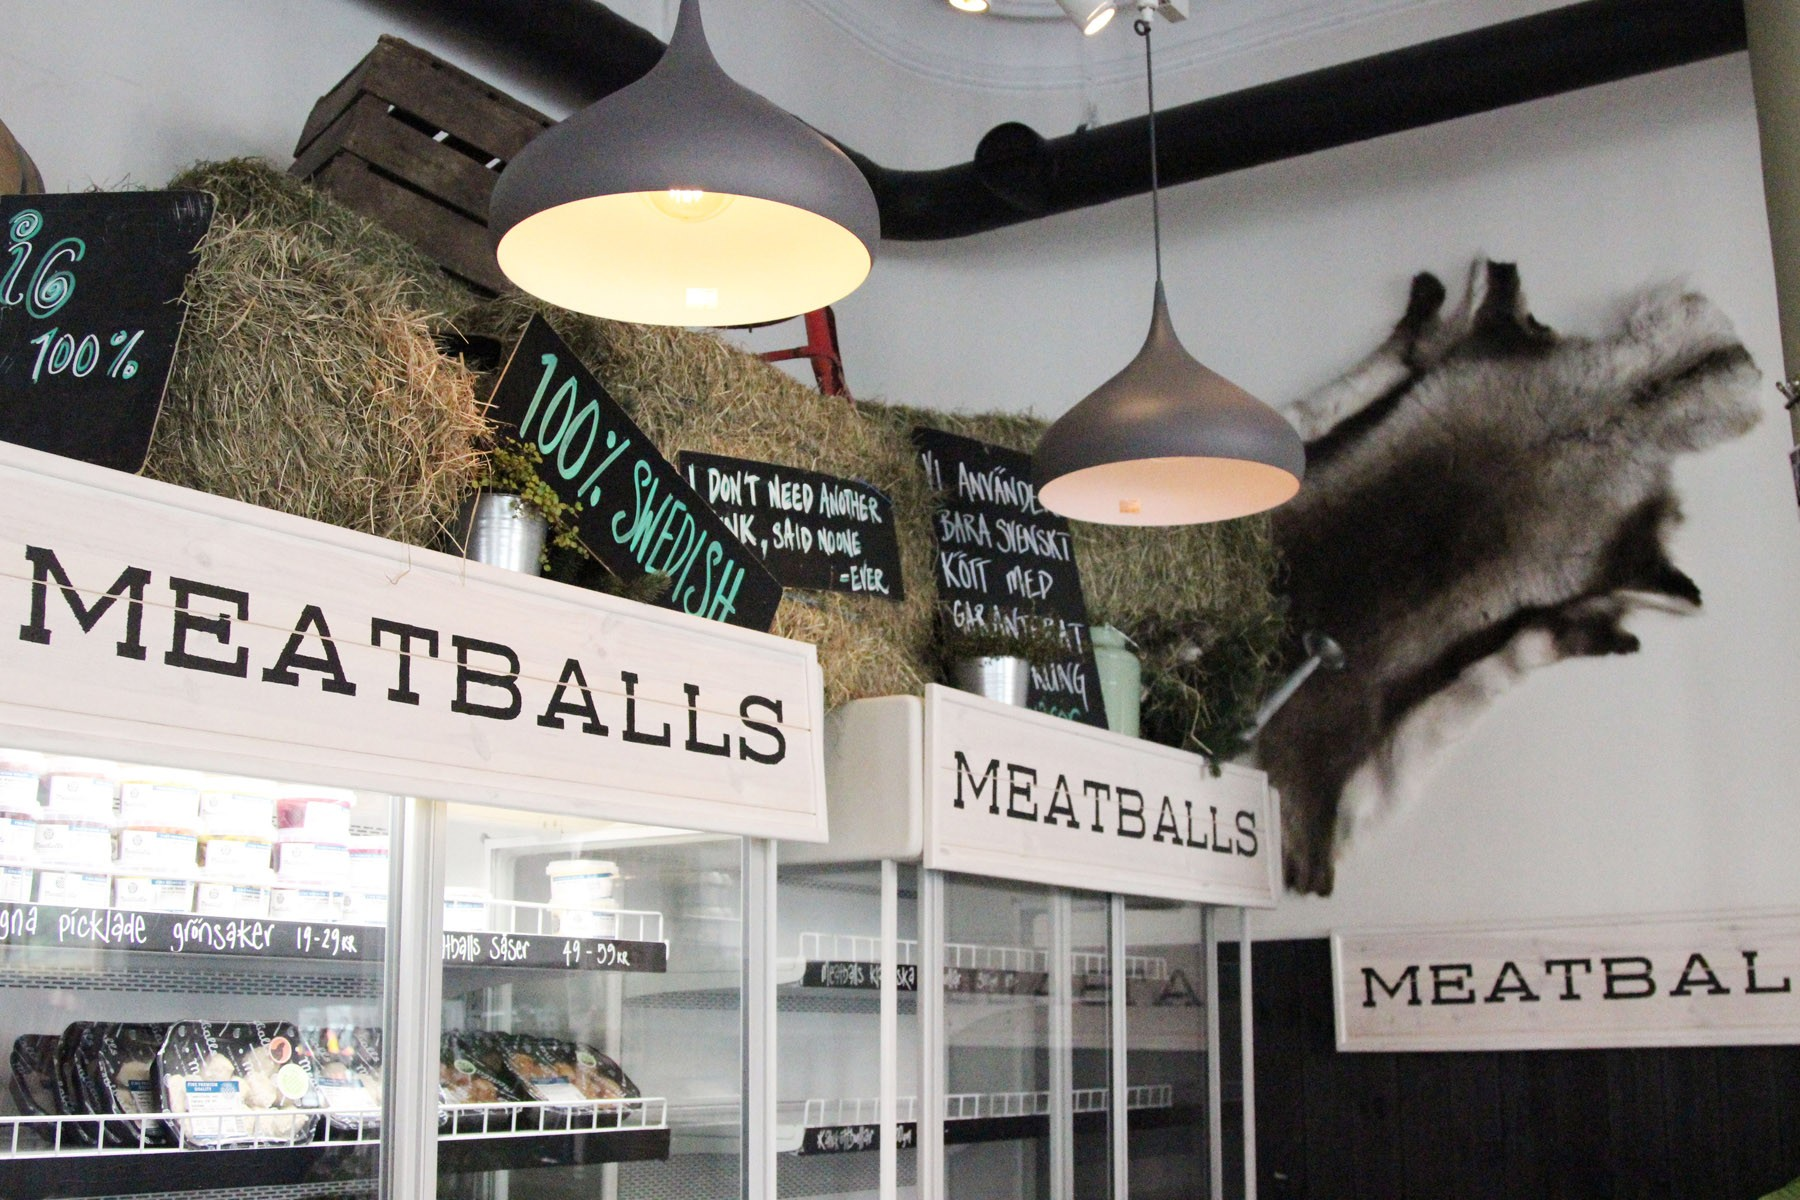 swedishmeatballs_Meatballs_for_the_People2